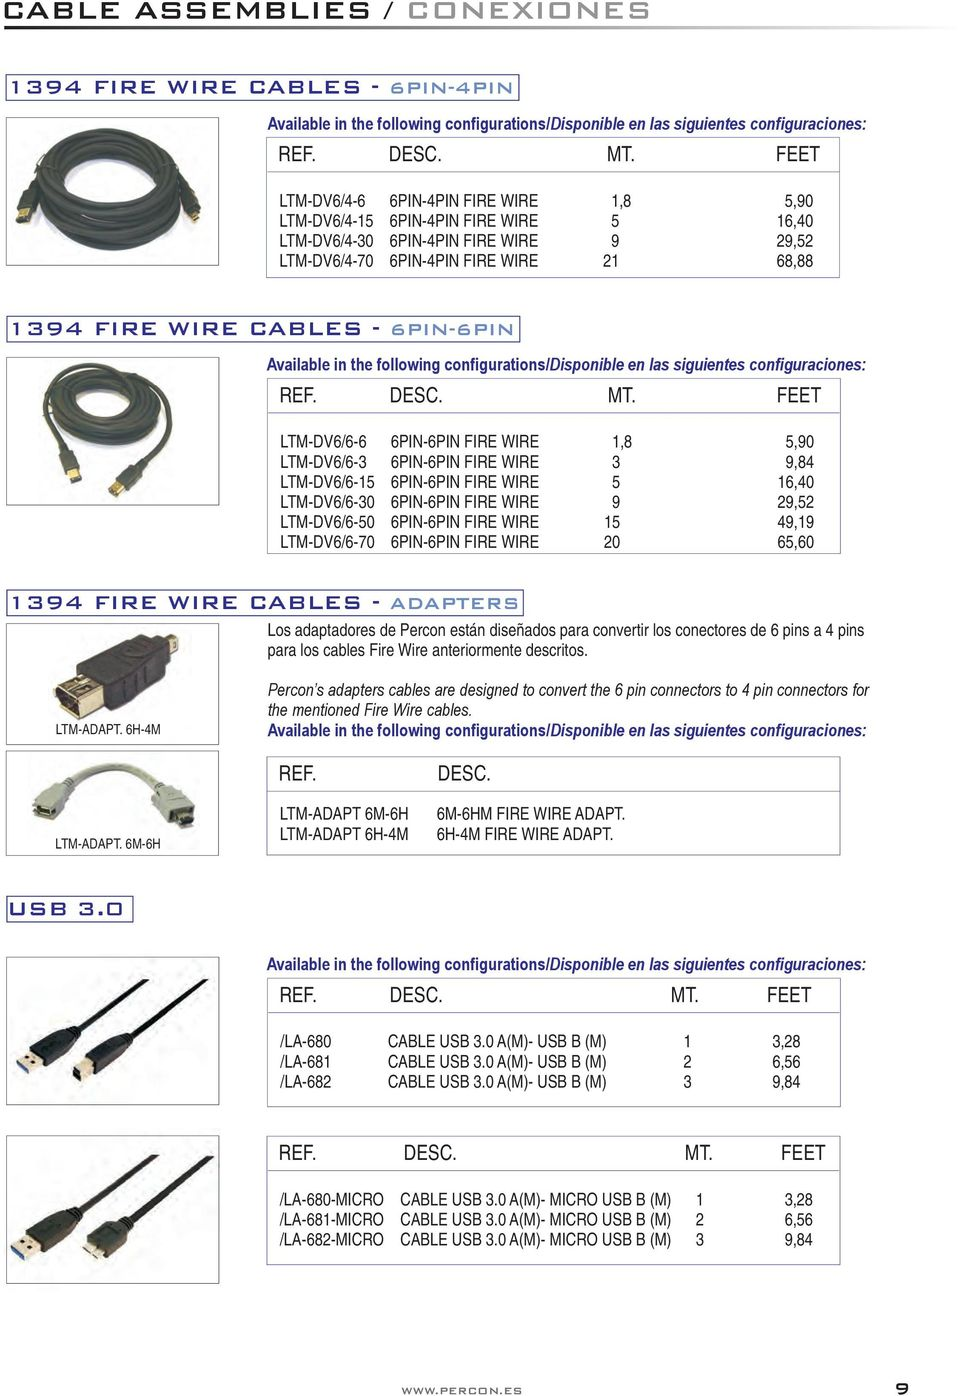 configurations/disponible en las siguientes configuraciones: LTM-DV6/6-6 6PIN-6PIN FIRE WIRE 1,8 5,90 LTM-DV6/6-3 6PIN-6PIN FIRE WIRE 3 9,84 LTM-DV6/6-15 6PIN-6PIN FIRE WIRE 5 16,40 LTM-DV6/6-30